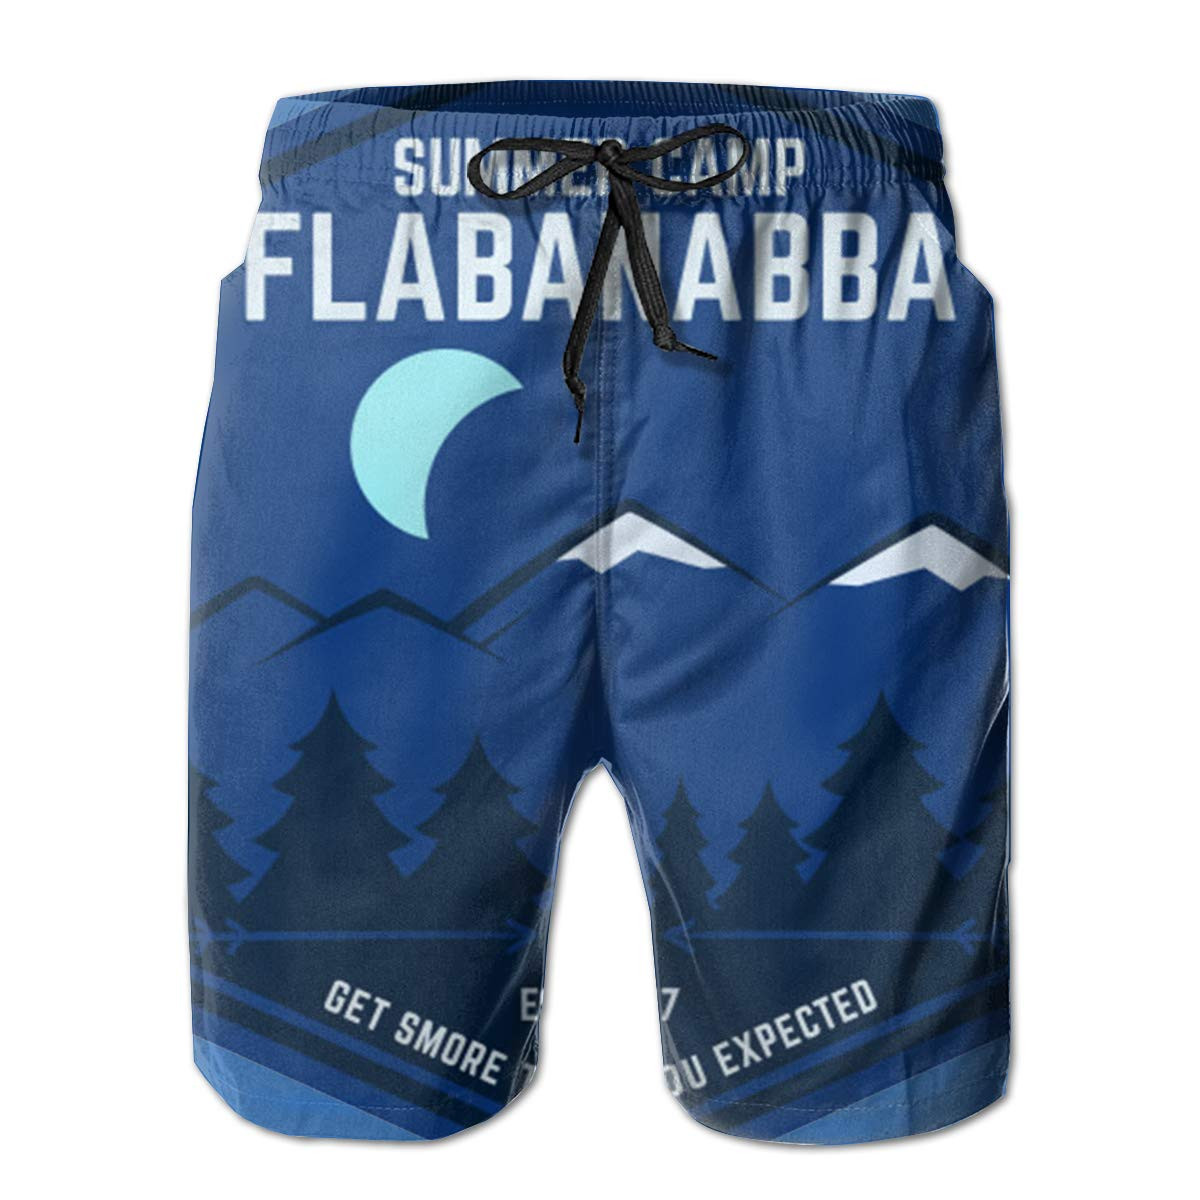 You Know And Good Summer Camp Flabanabba Mens Swim Trunks Bathing Suit Beach Shorts